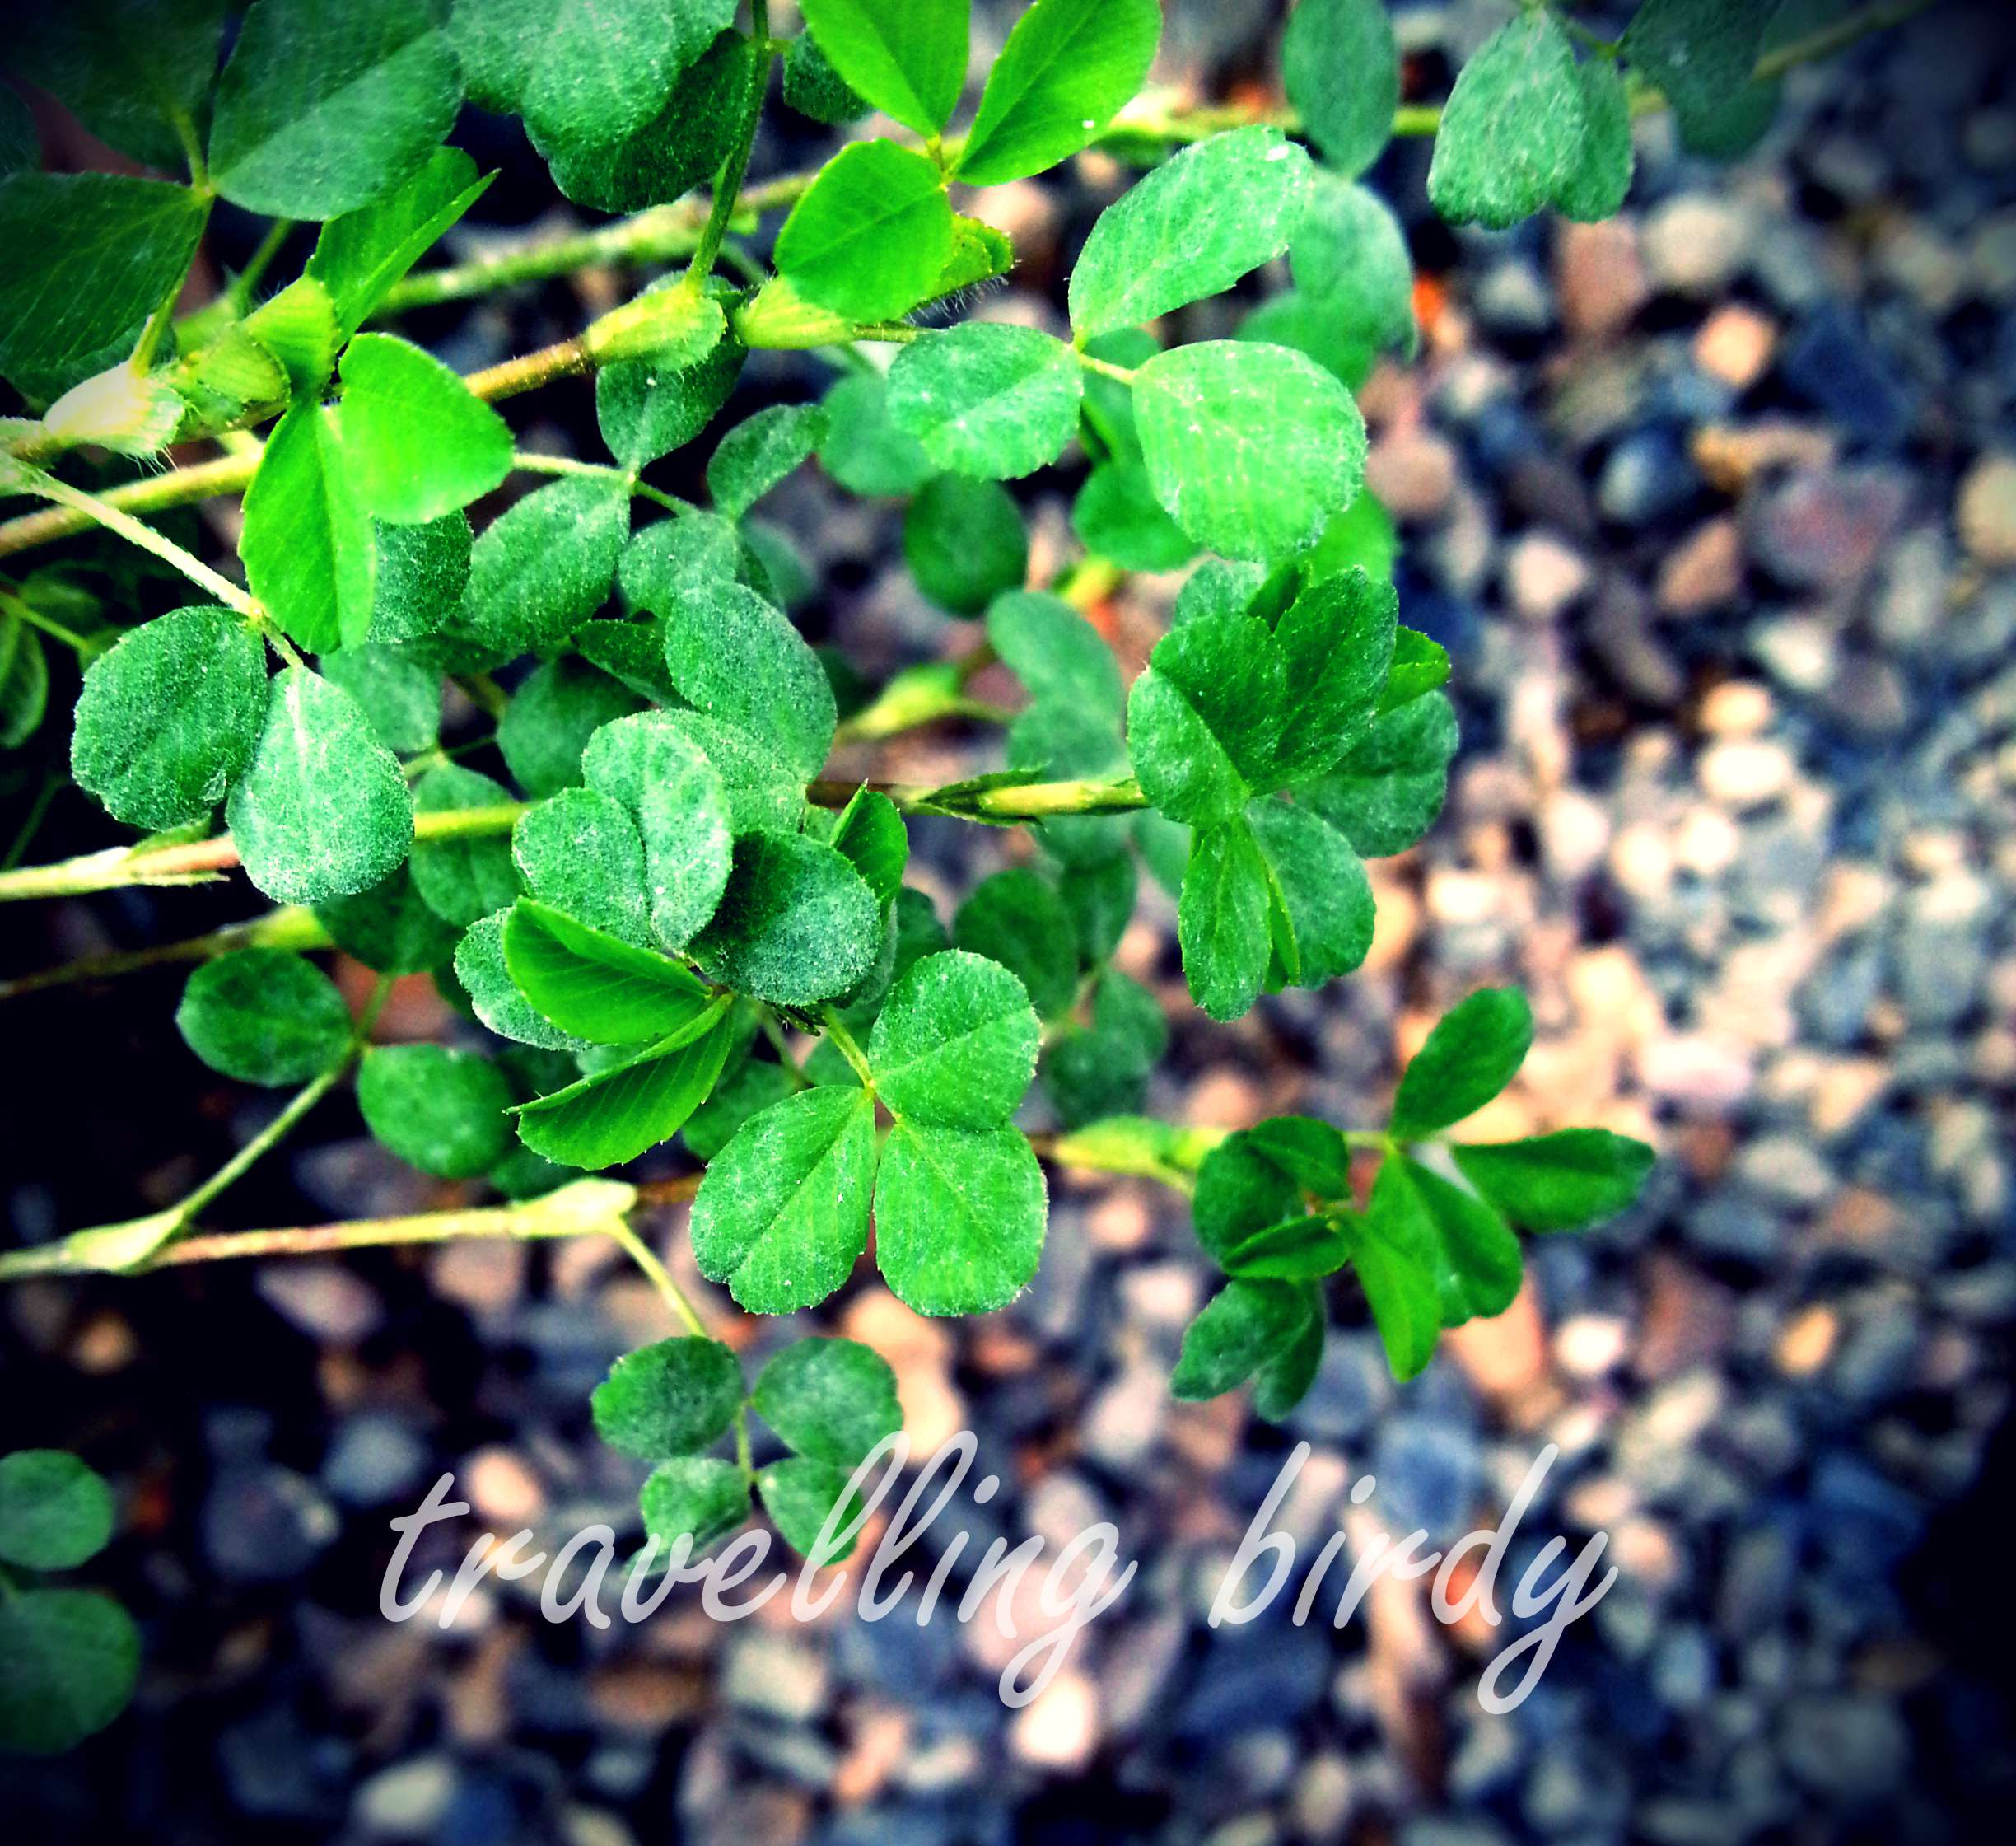 shamrock - the symbol of Ireland